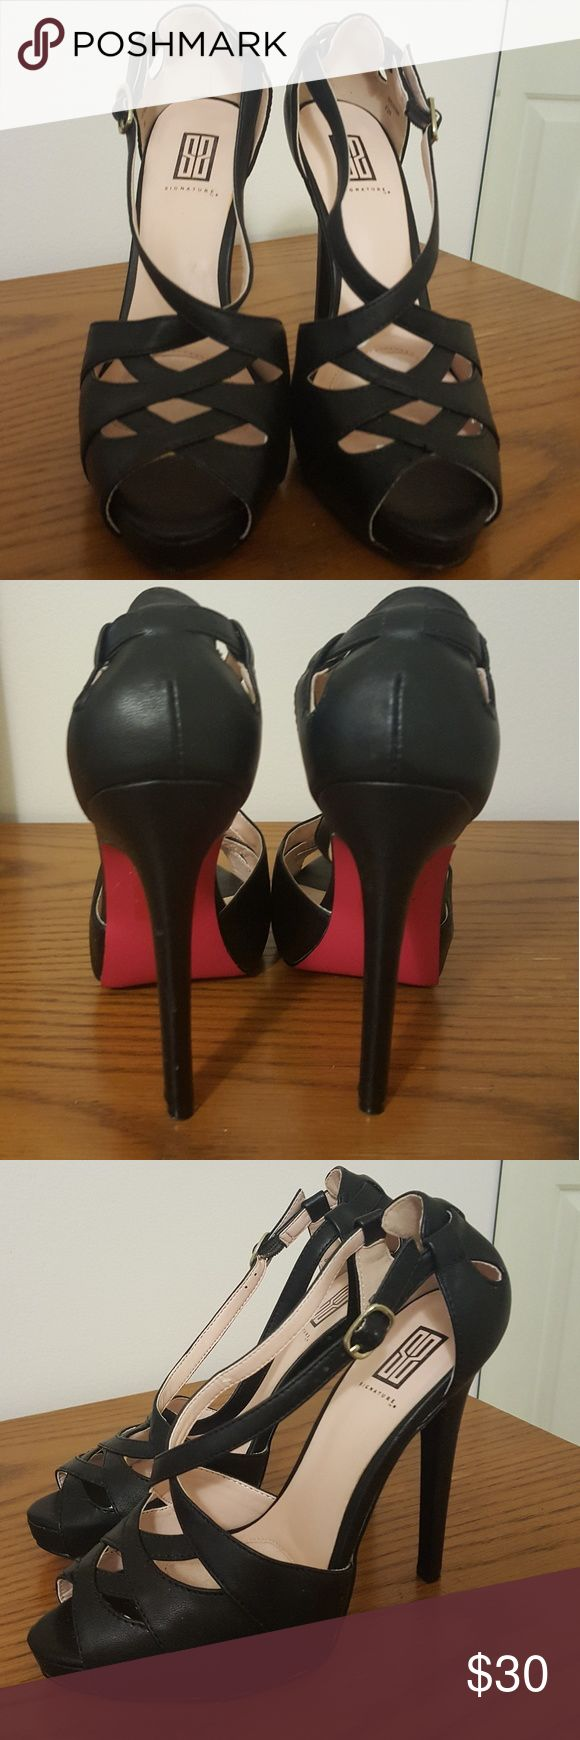 Shoe dazzle Syleena black high heels Size 7 Black. Size 7. Shoe Dazzle Signature Collection Syleena platform high heels. Pink soles, super cute. Features an insole comfort pad for luxe wearability. Brand new, only worn around the house to try them on. Shoe Dazzle Shoes Heels